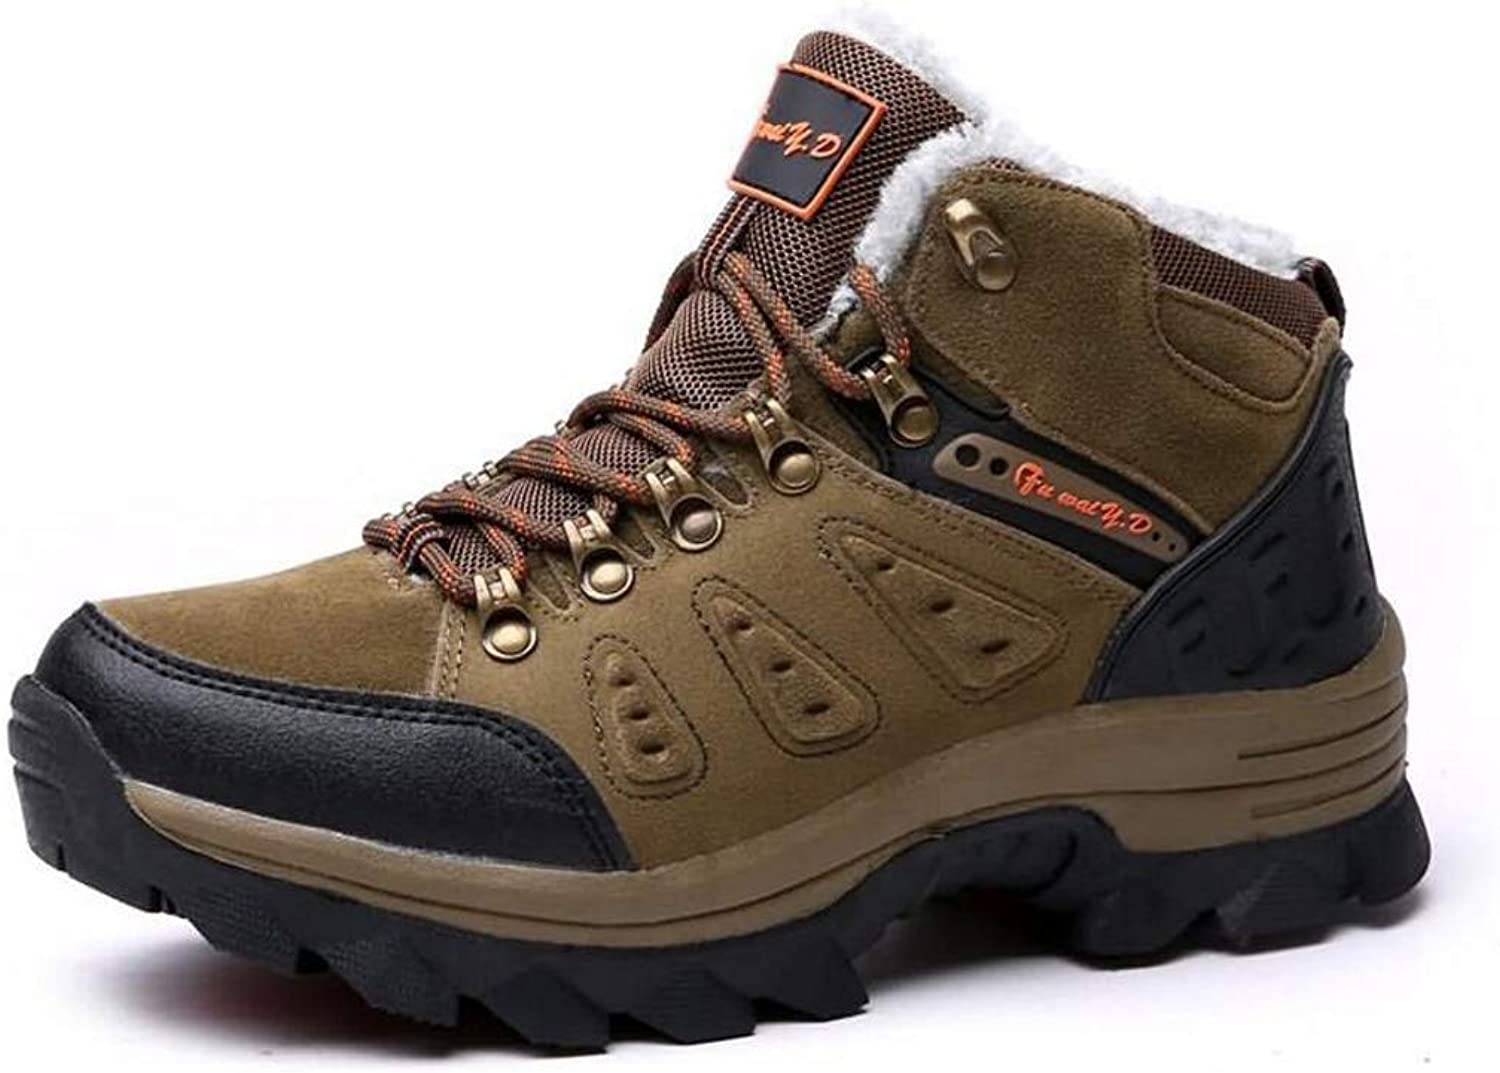 b9b1a61fa1d99 Waterproof Hiking shoes for Men Shockproof Non-Slip Leather Leather ...